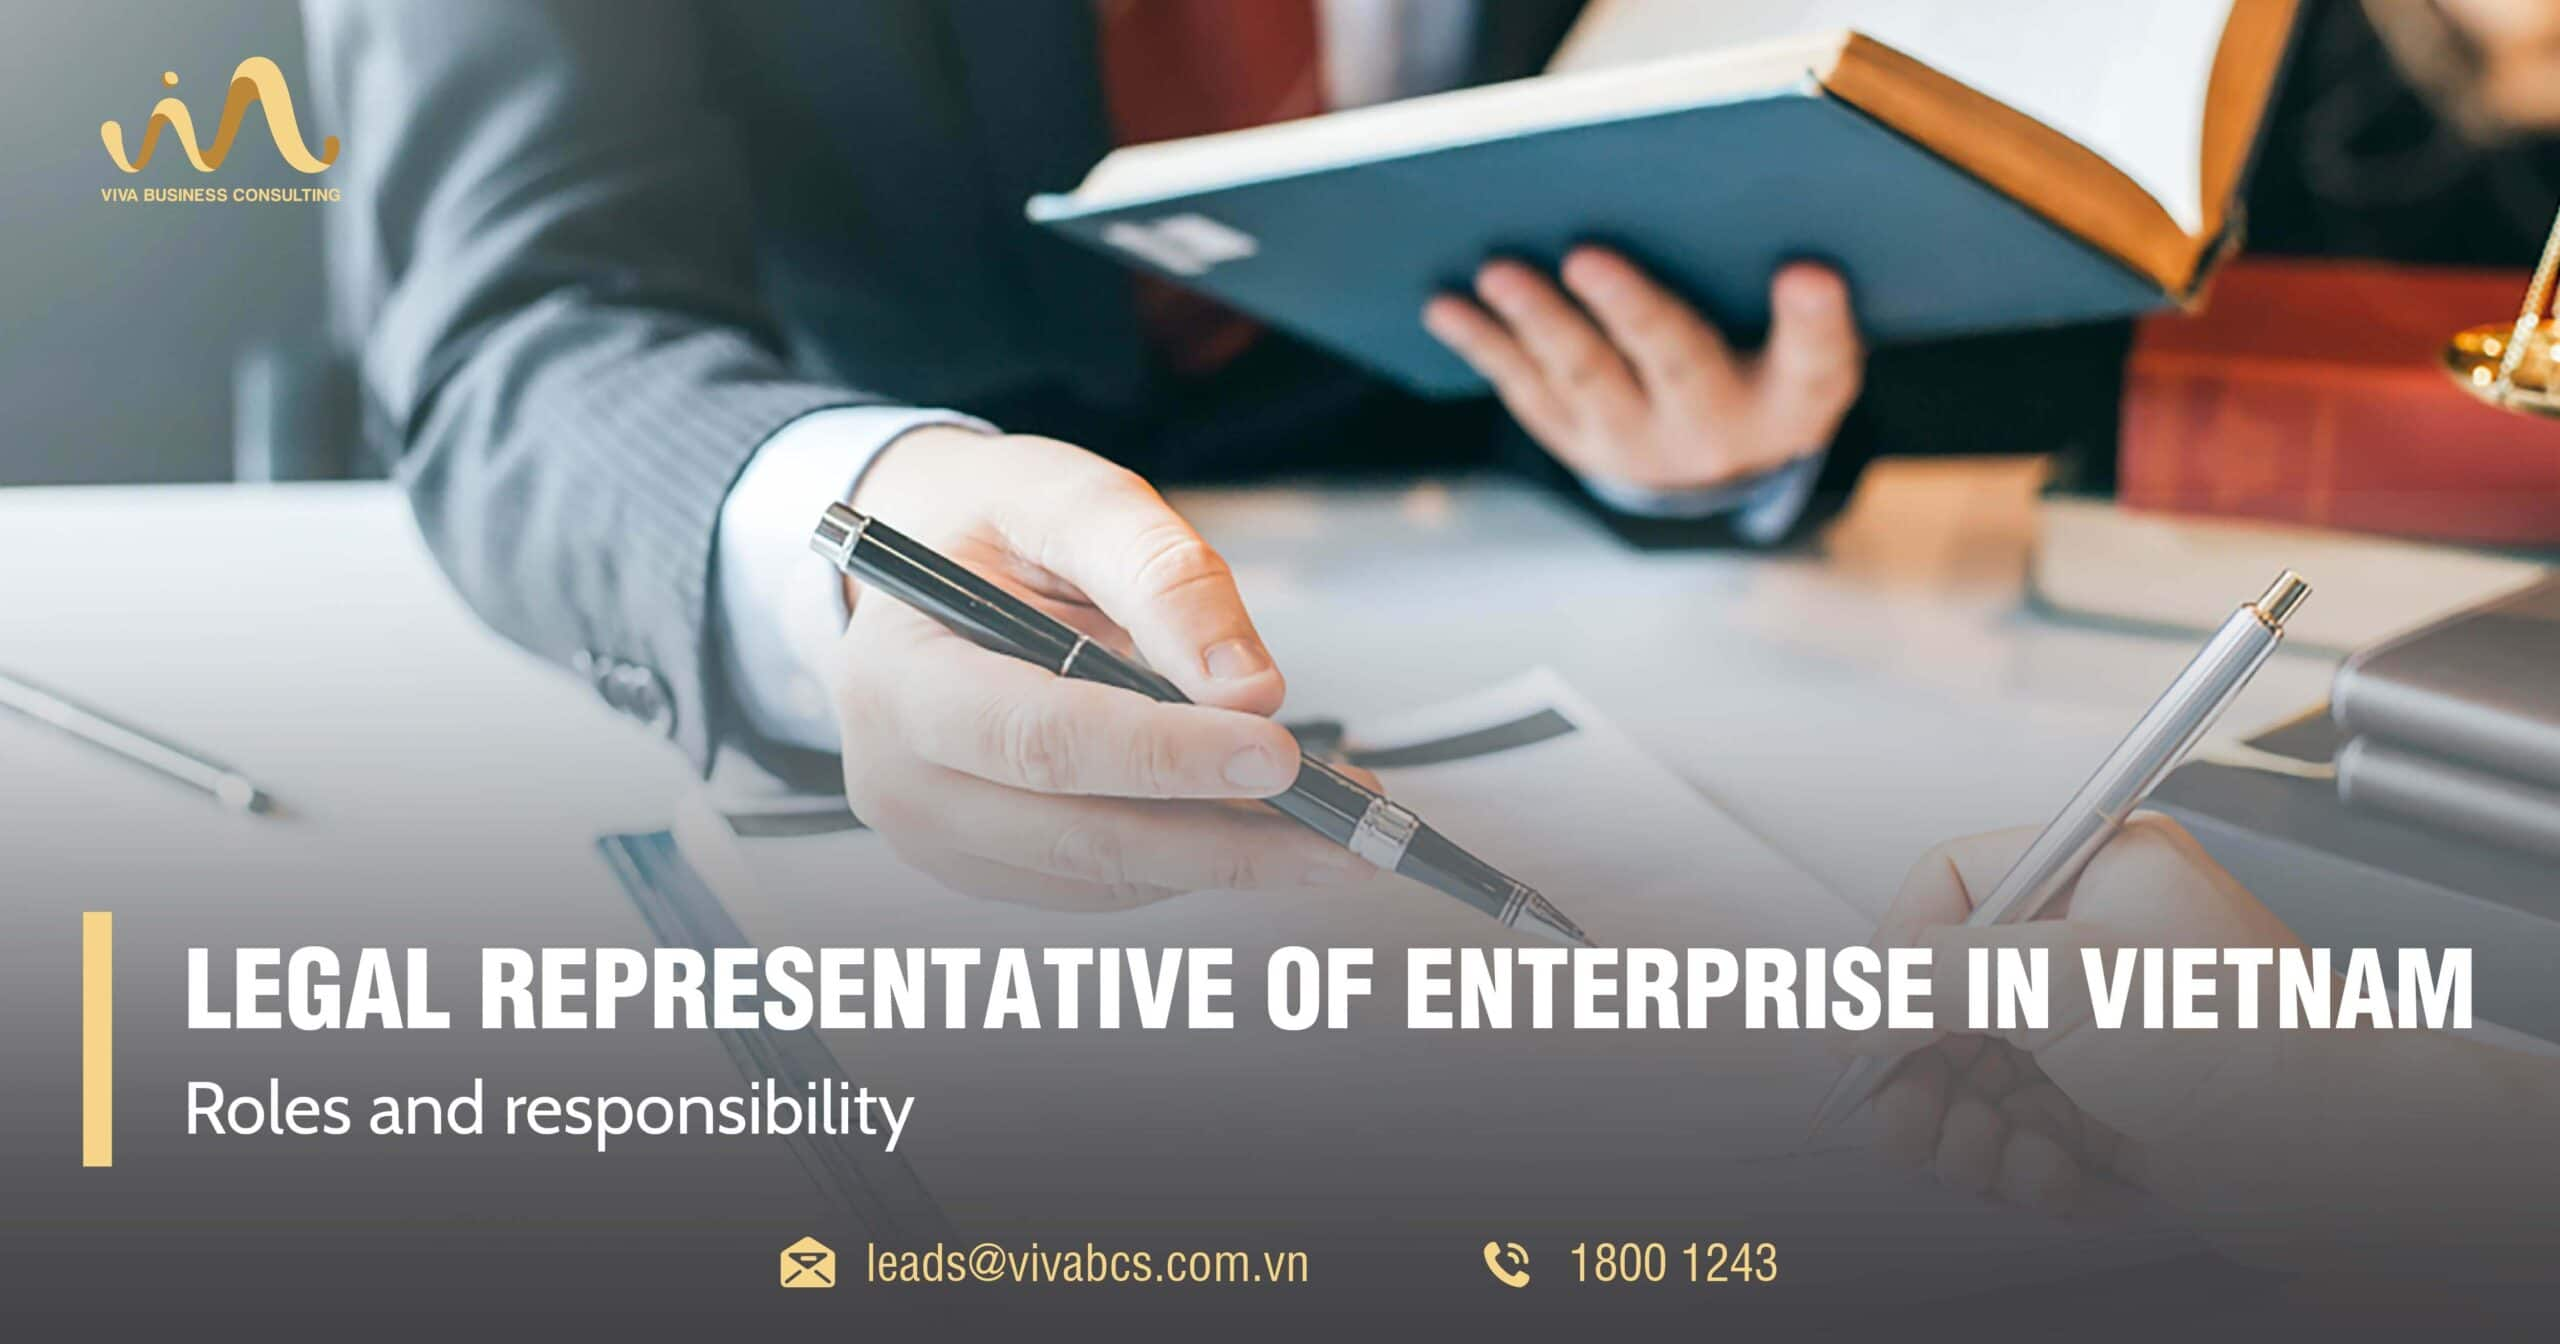 Legal representative of enterprise in Vietnam